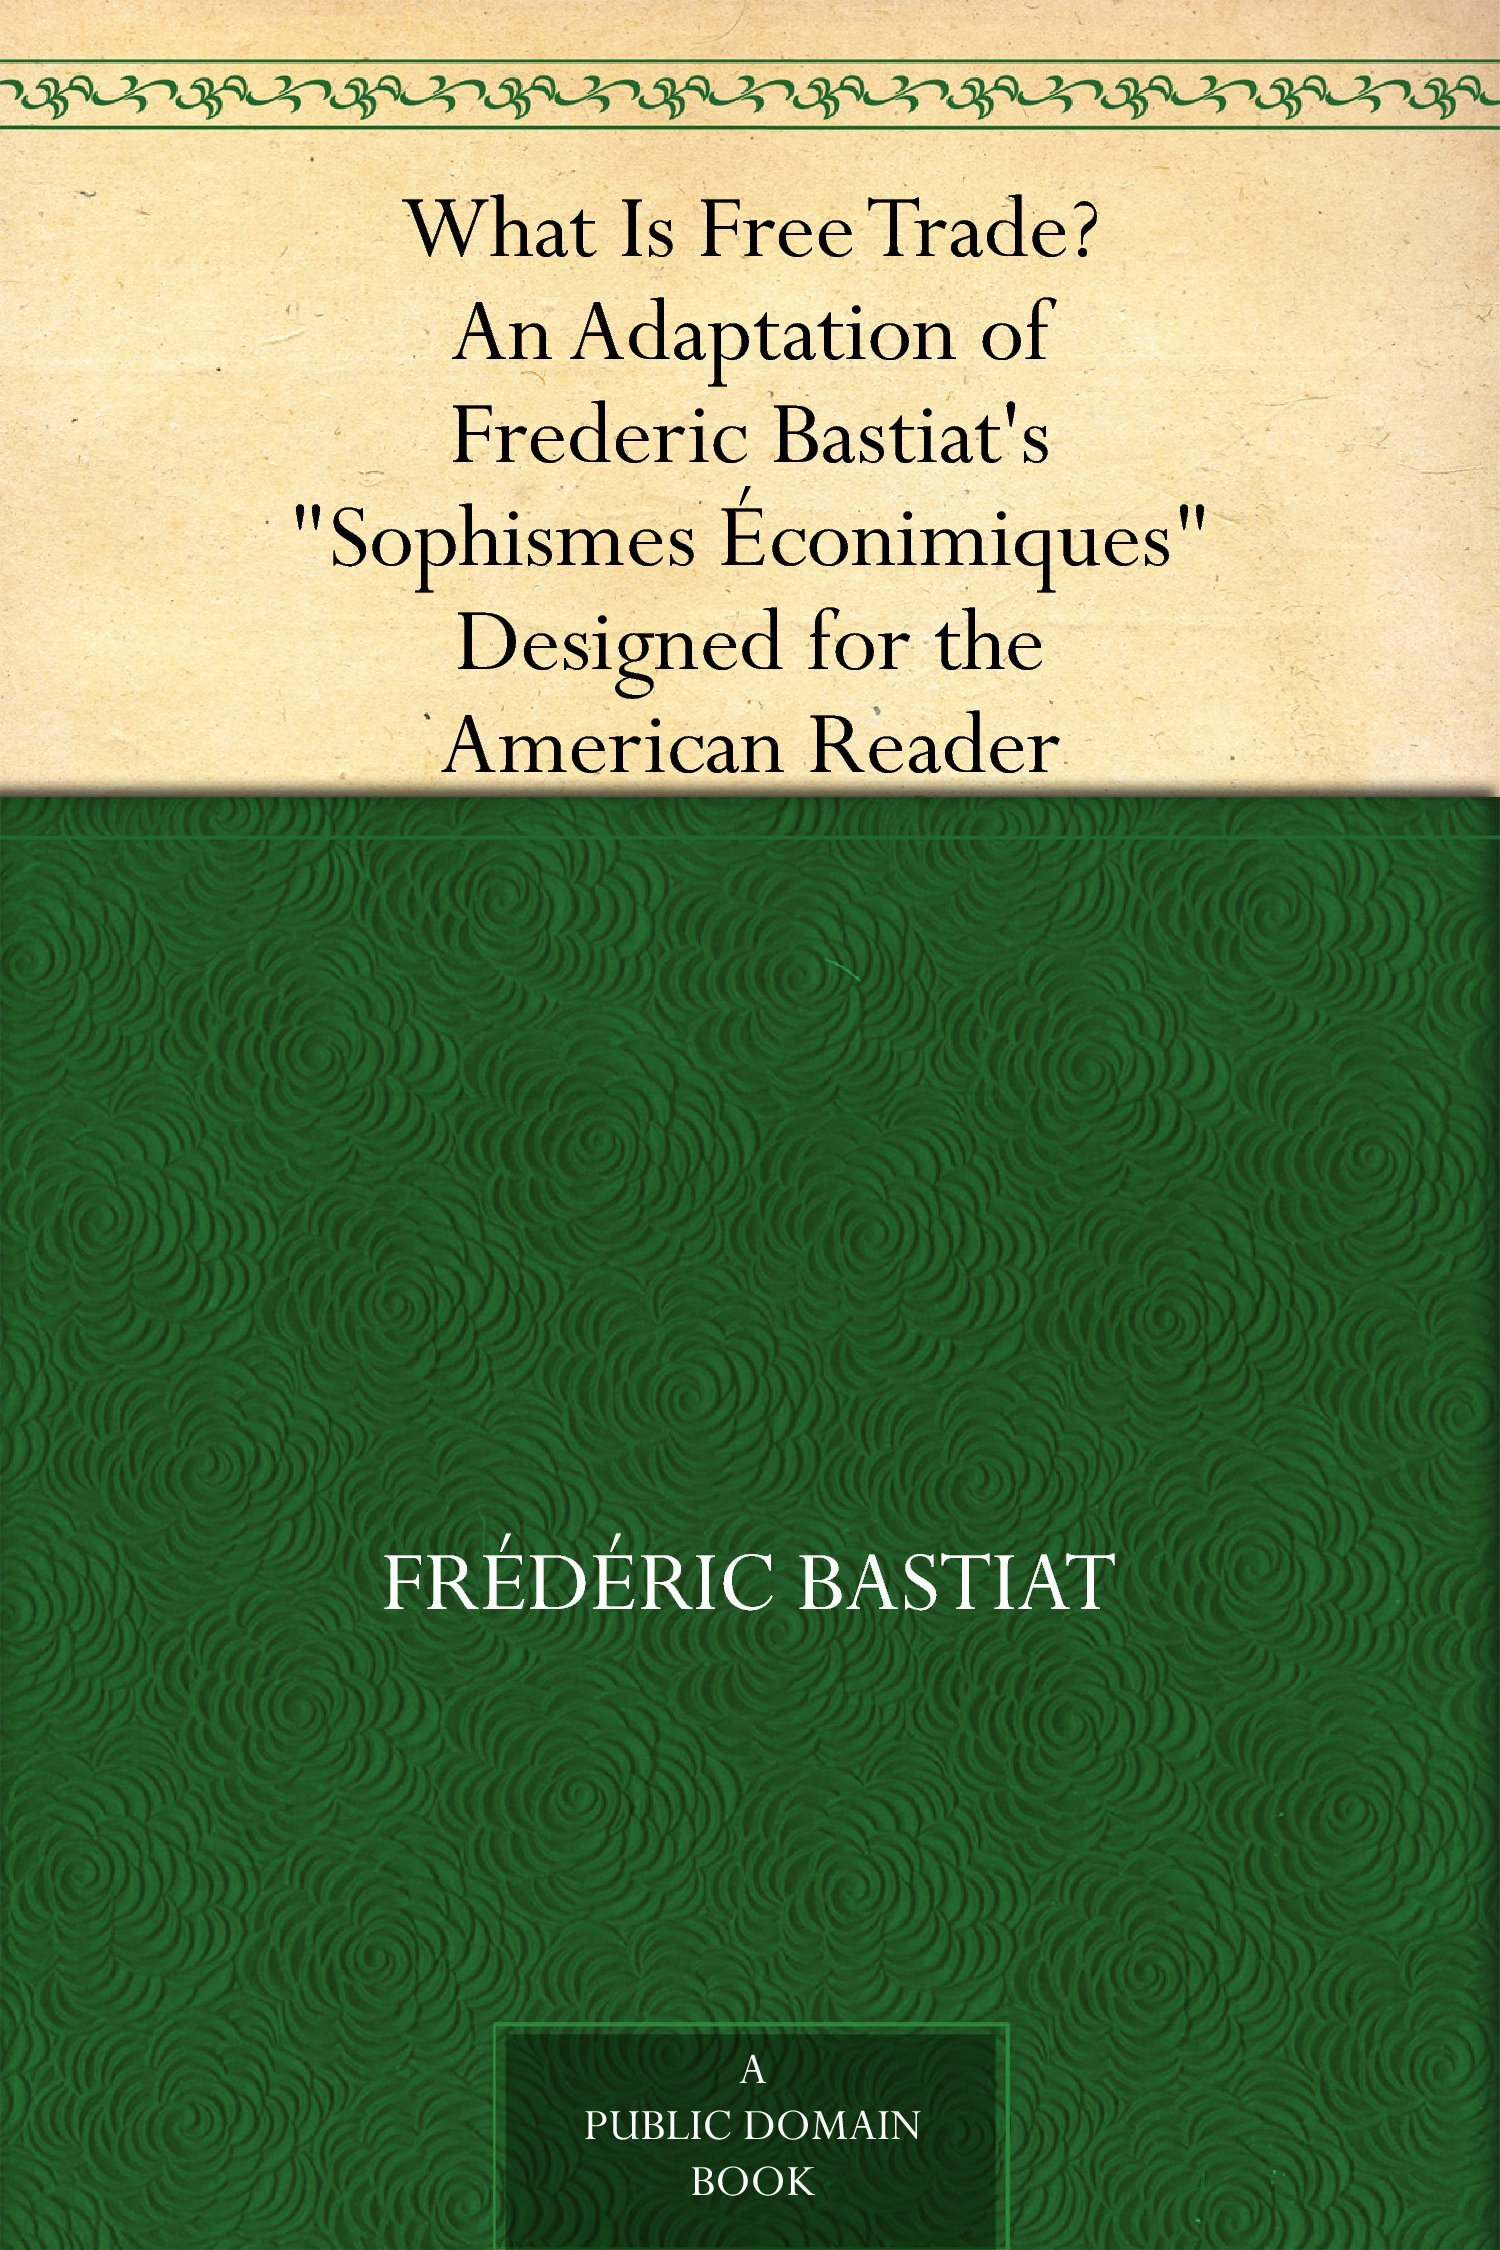 What Is Free Trade?: An Adaptation of Frederic Bastiat's